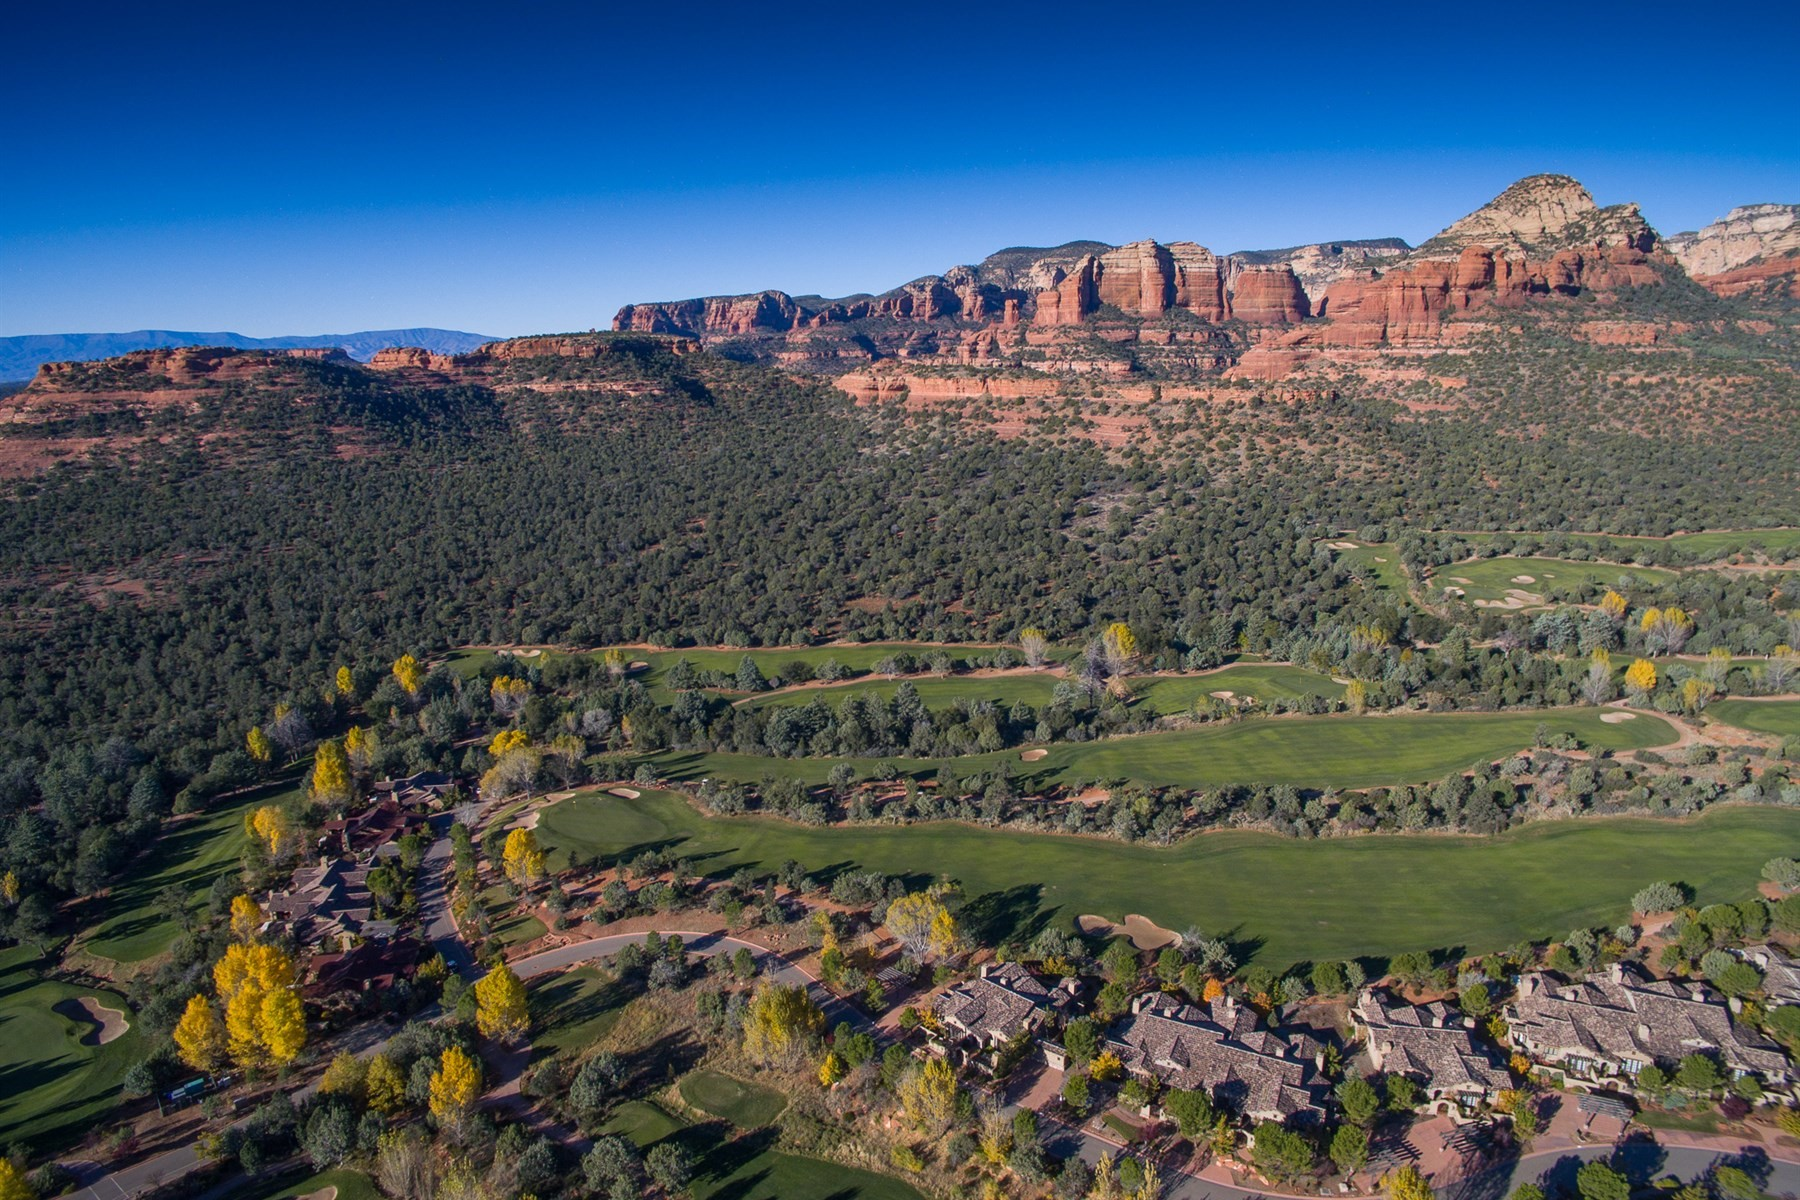 Terreno por un Venta en Seven Canyons Golf Resort 30 W Canyon Vista Rd, Sedona, Arizona, 86336 Estados Unidos